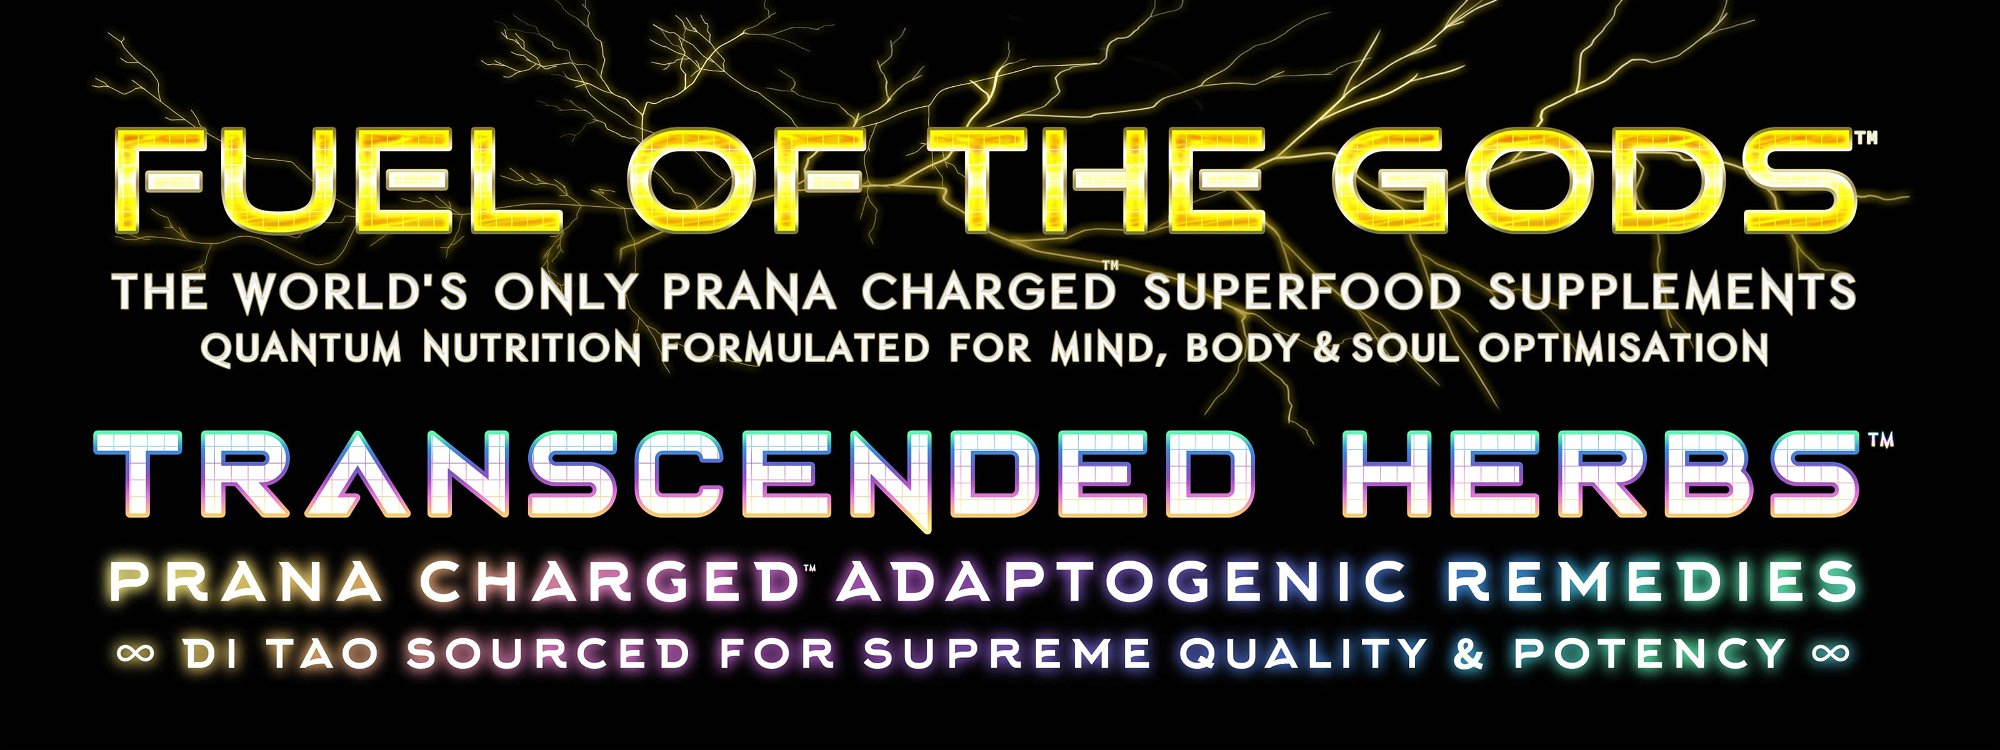 fuel of the gods & transcended herbs prana charged superfood supplements